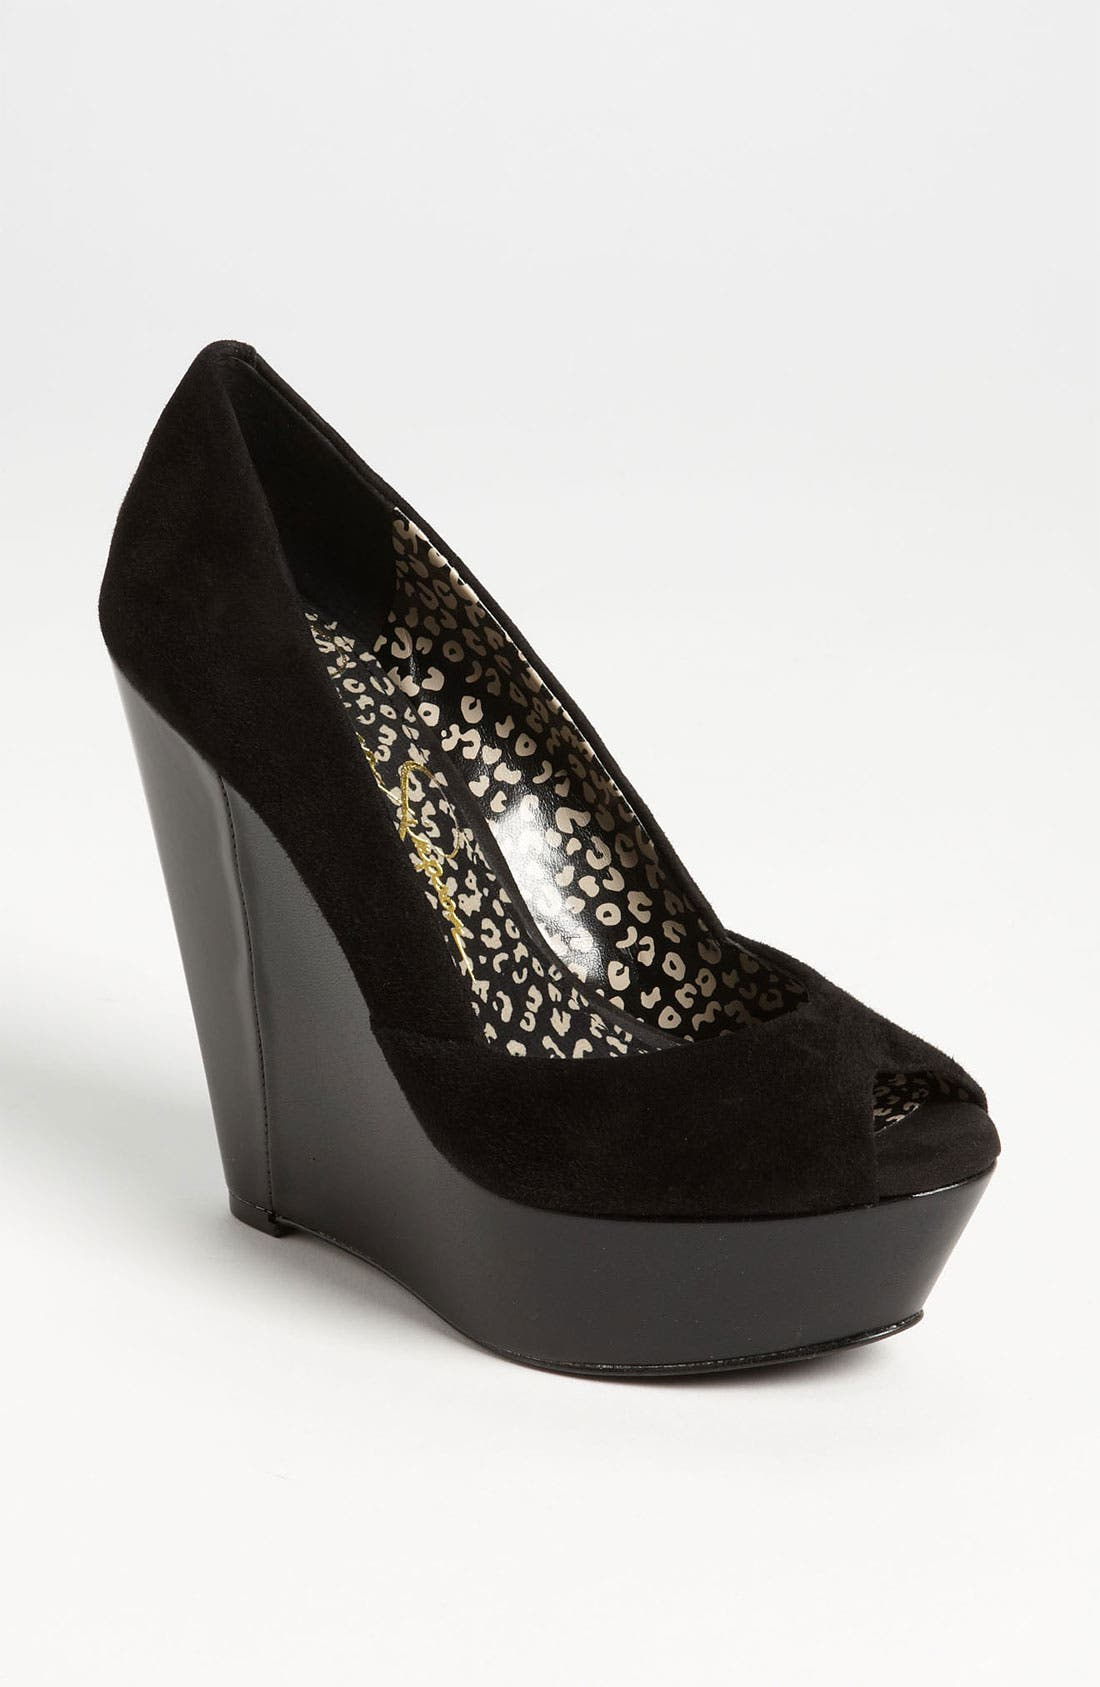 Alternate Image 1 Selected - Jessica Simpson 'Leelo' Pump